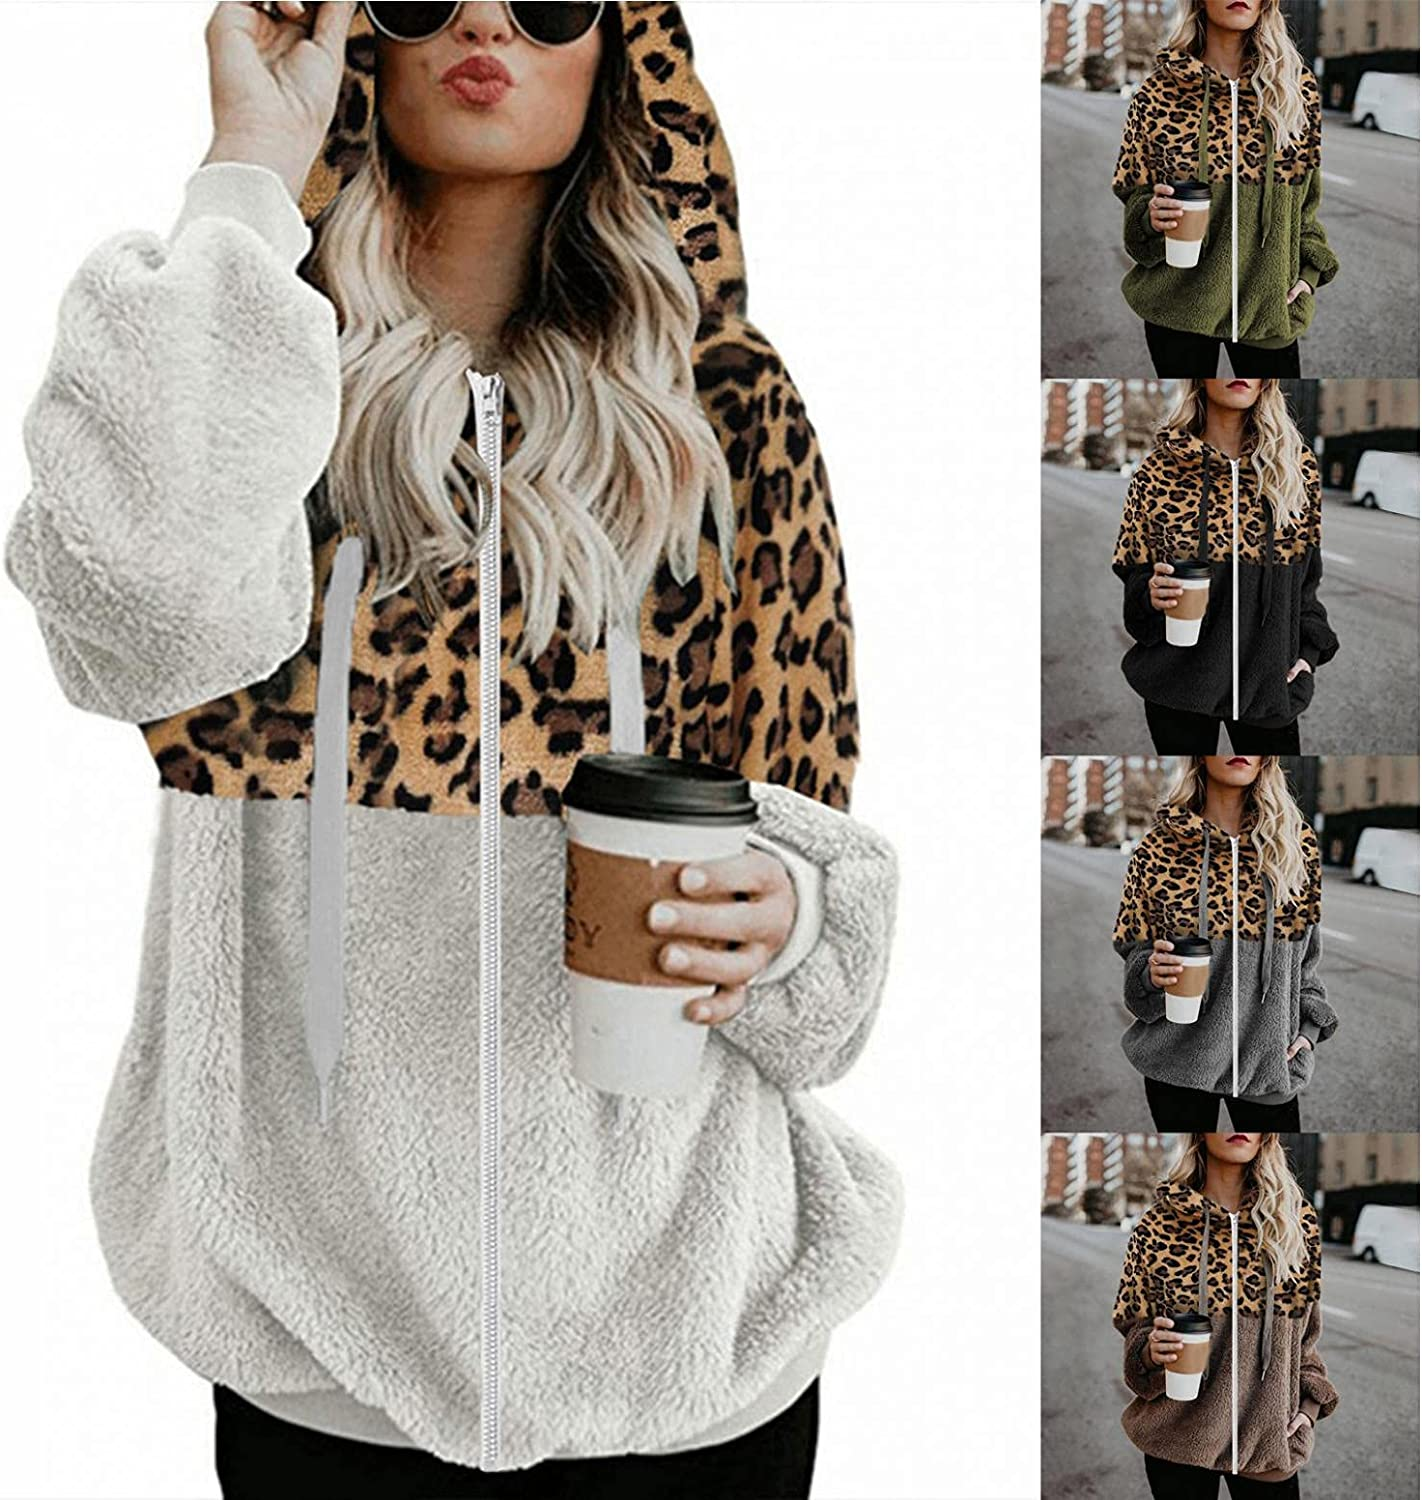 felwors Hoodies for Women, Womens Oversized Double Fuzzy Warm Casual Pullover Hooded Outwear Sweatshirt with Pockets